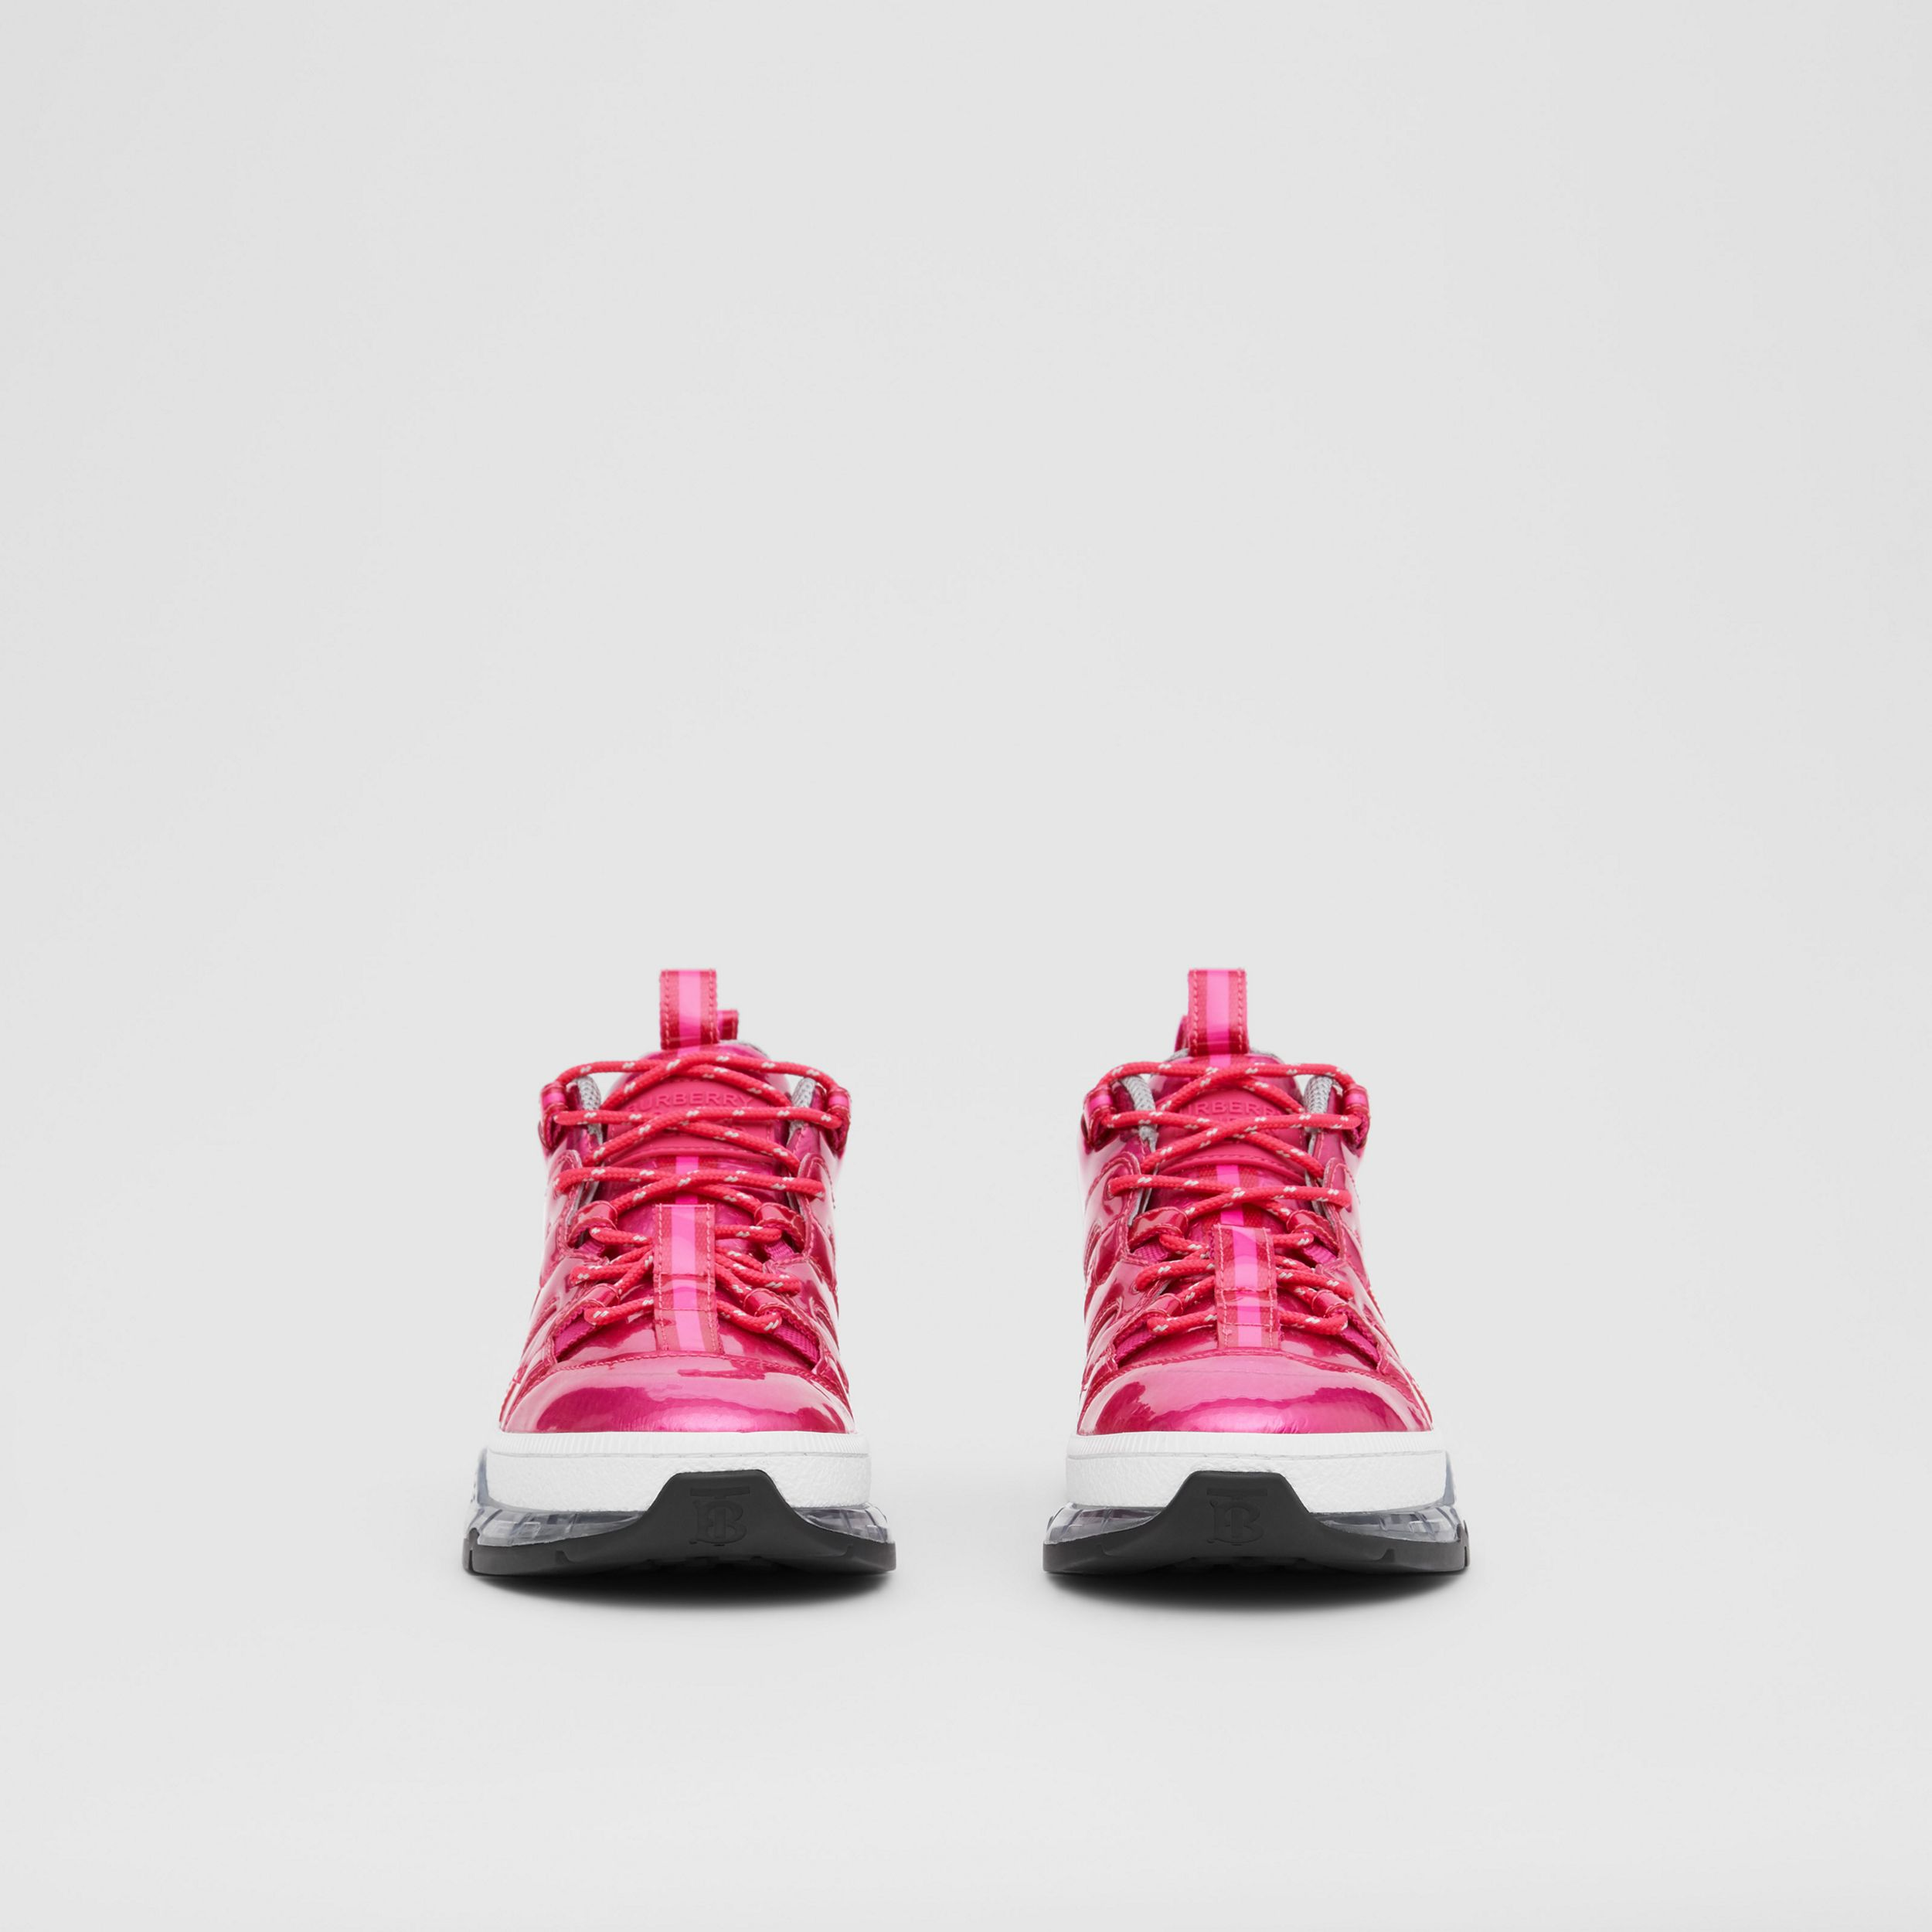 Vinyl and Nylon Union Sneakers in Fuchsia - Women | Burberry - 3